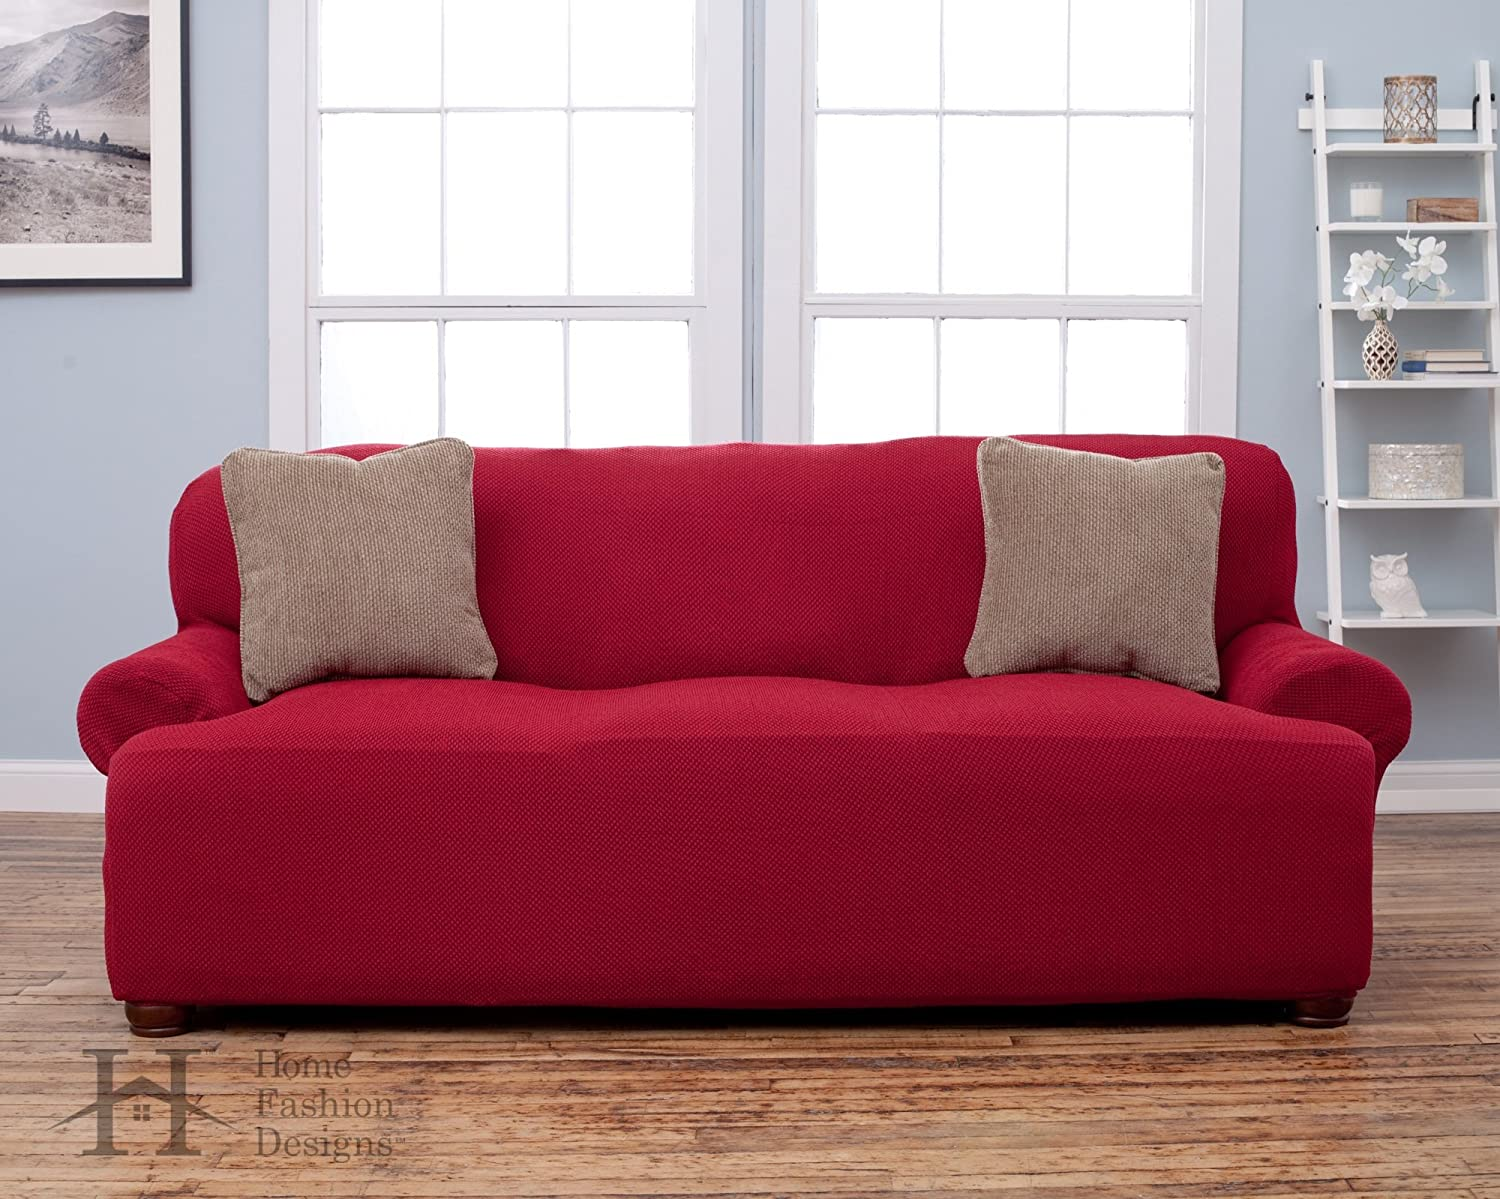 pennystreasures slipcover finecraftguild fr diy at newslipcover sofa ruffle com featured